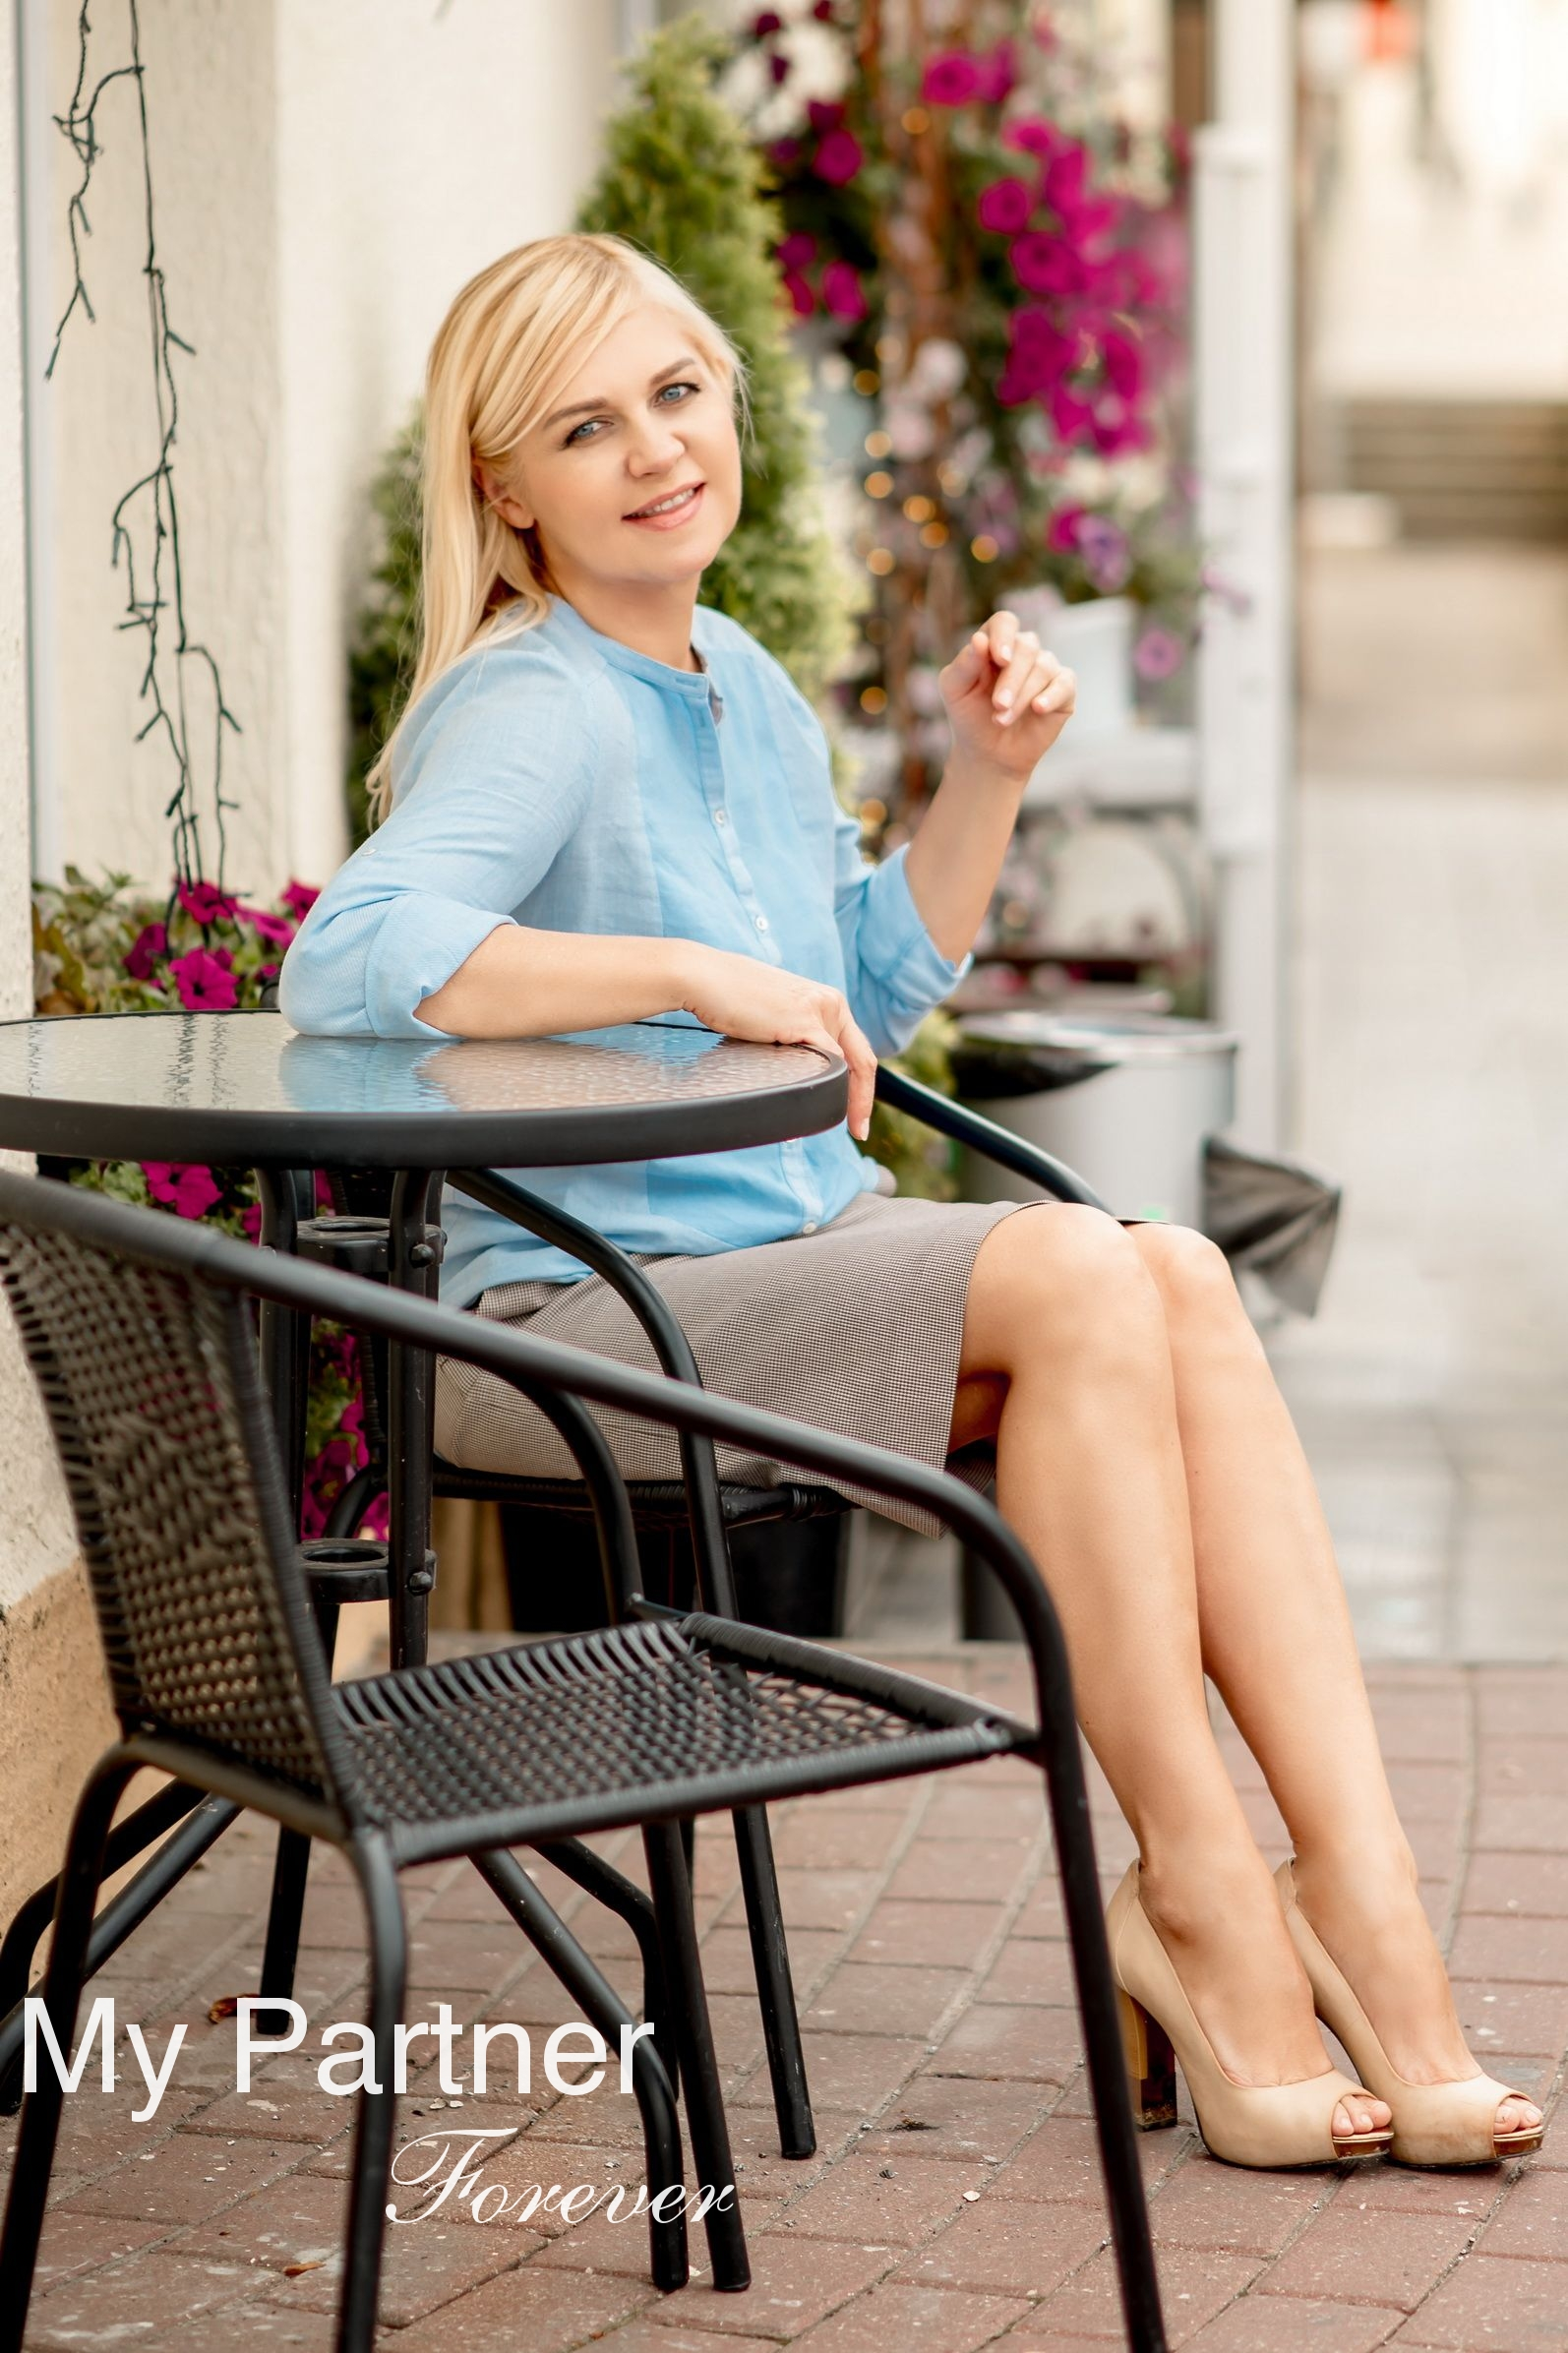 Dating Site to Meet Charming Belarusian Lady Larisa from Grodno, Belarus